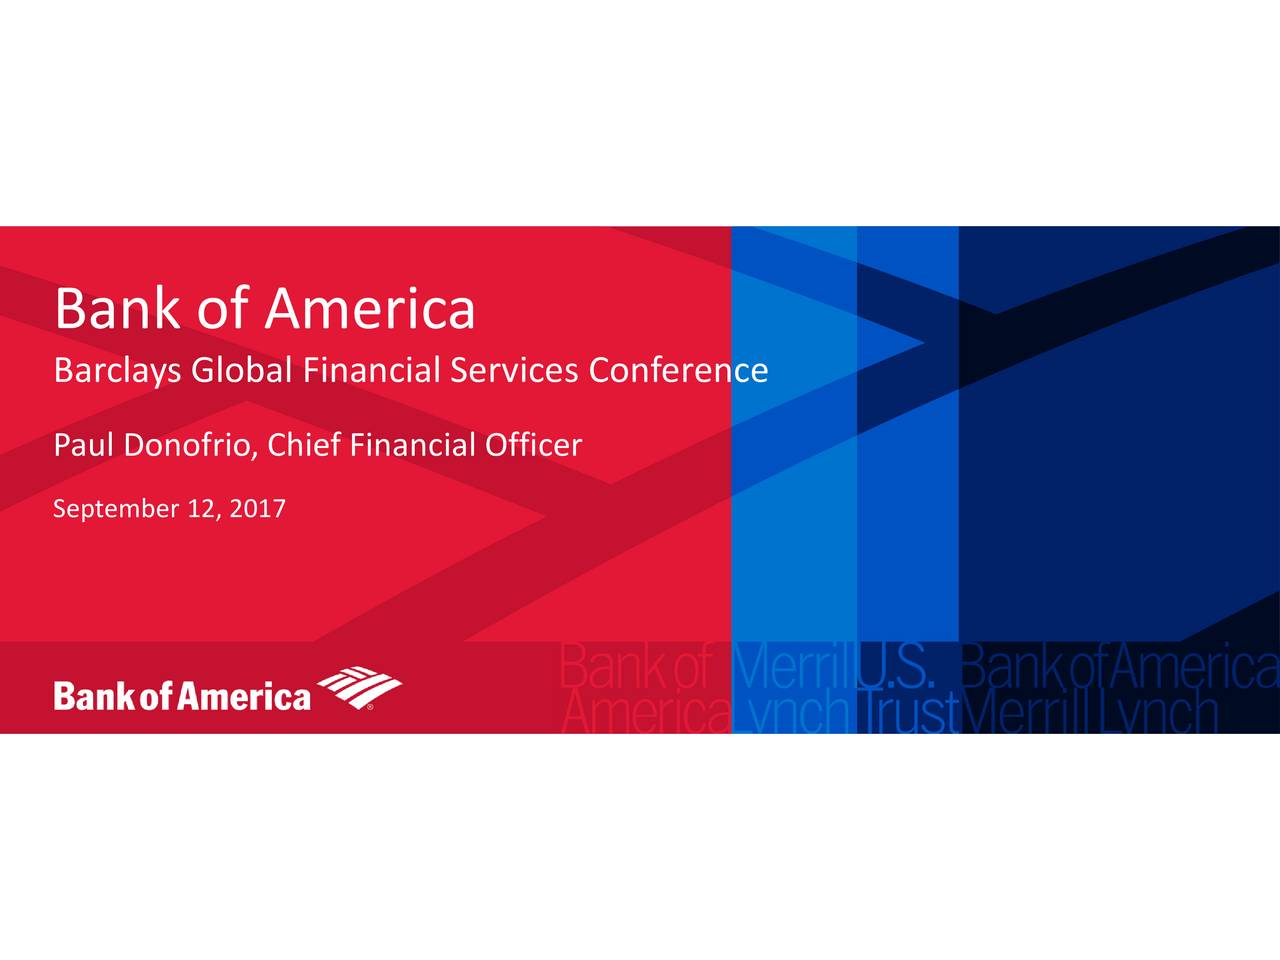 Barclays Global Financial Services Conference Paul Donofrio, Chief Financial Officer September 12, 2017